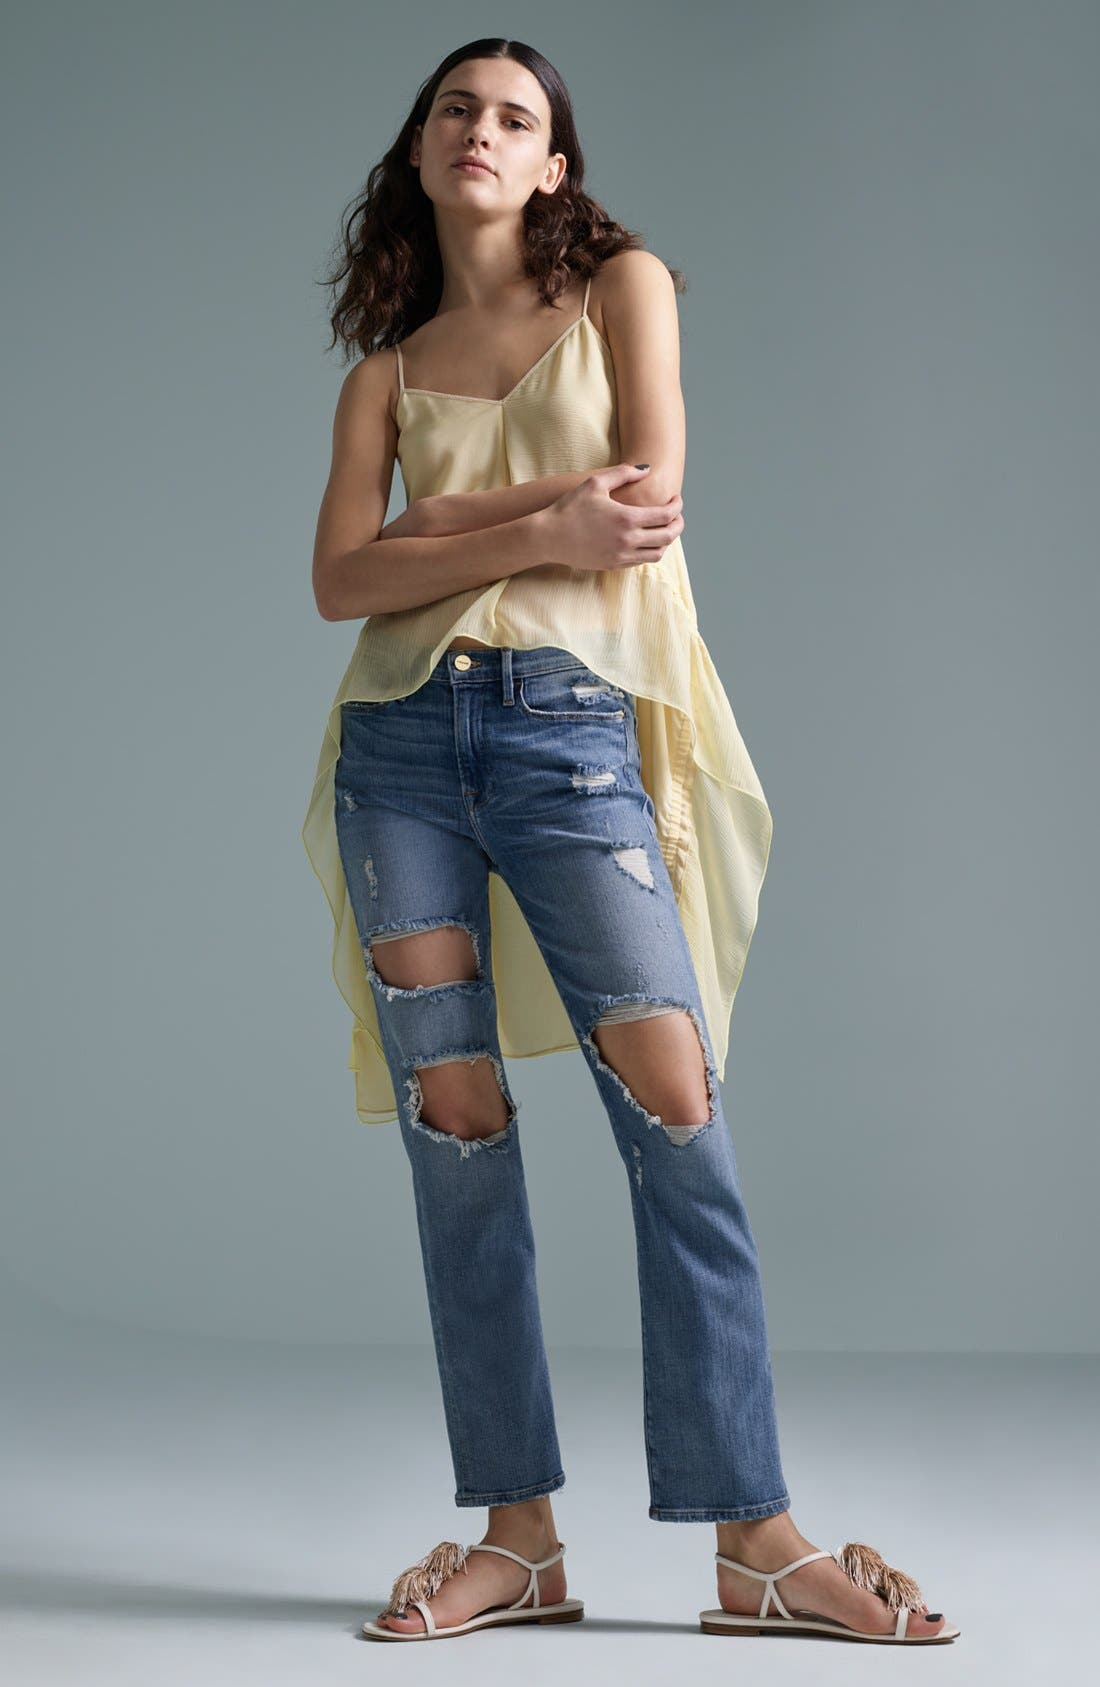 Elizabeth and James Tank & FRAME Jeans Outfit with Accessories